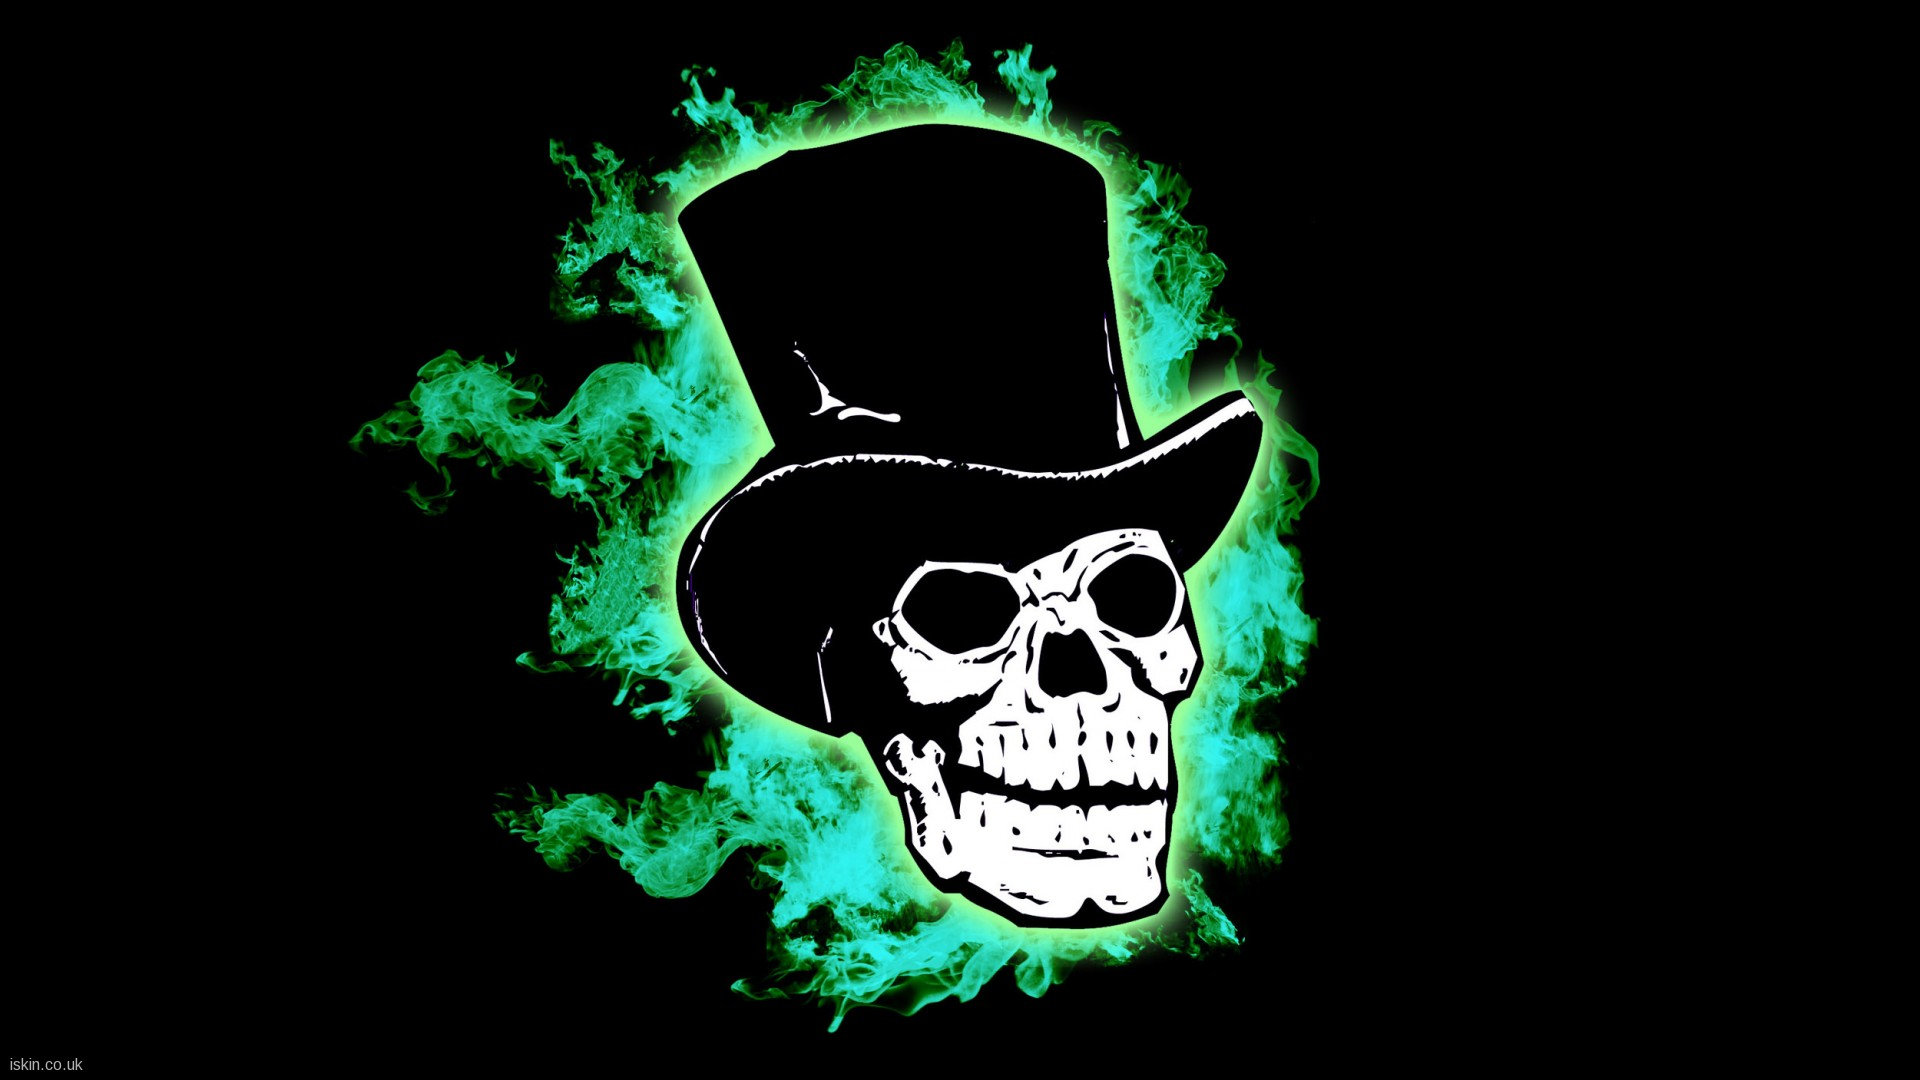 Cool Skull Backgrounds Free Wallpaper Download